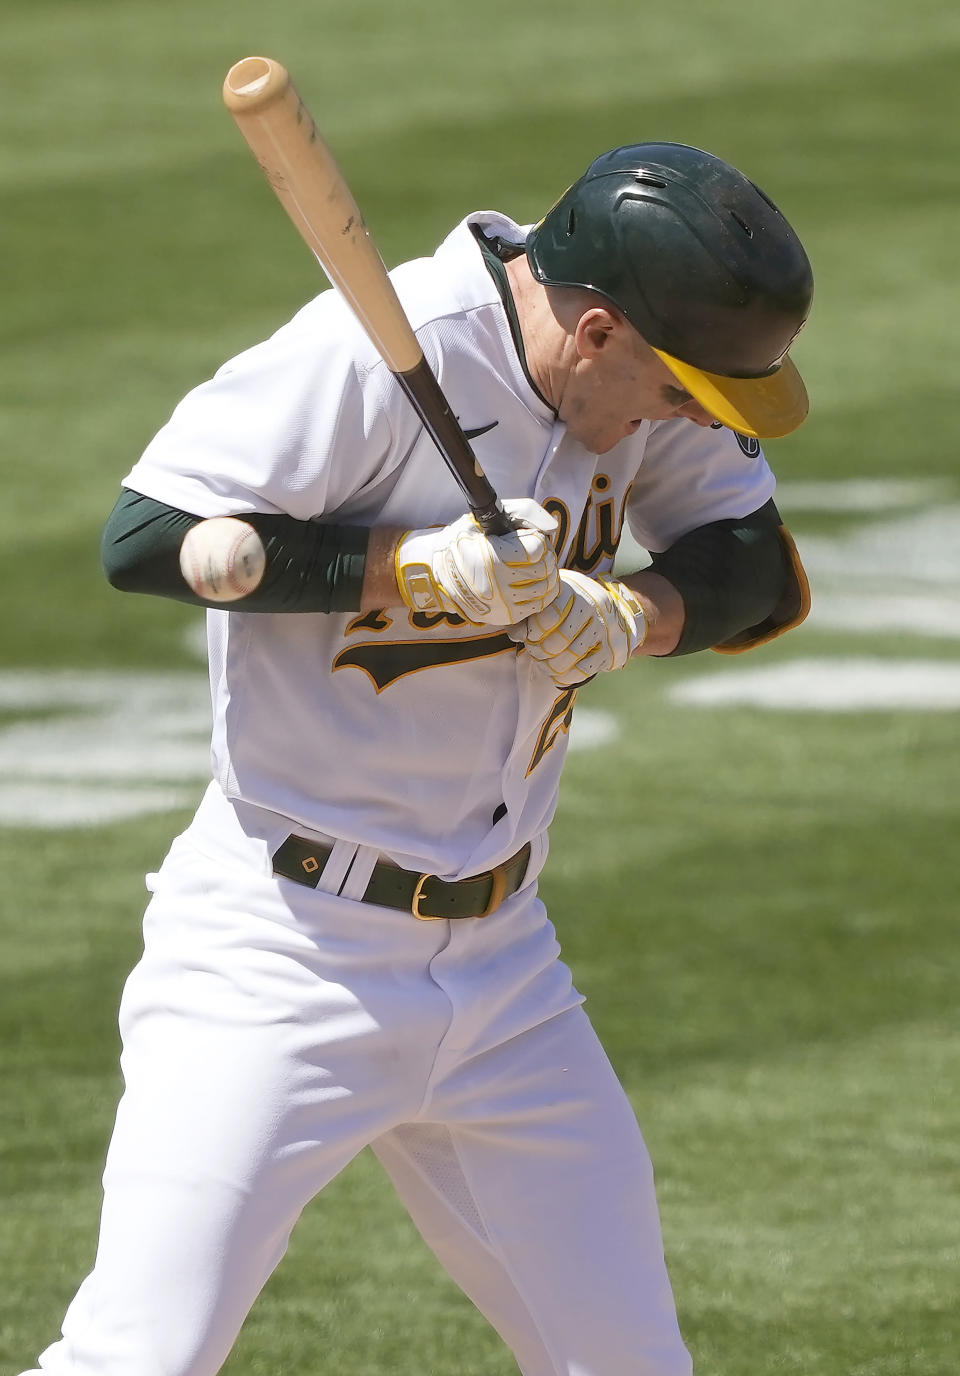 Oakland Athletics' Mark Canha (20) is hit by a pitch by Detroit Tigers pitcher Casey Mize during the fifth inning of a baseball game on Saturday, April 17, 2021, in Oakland, Calif. (AP Photo/Tony Avelar)